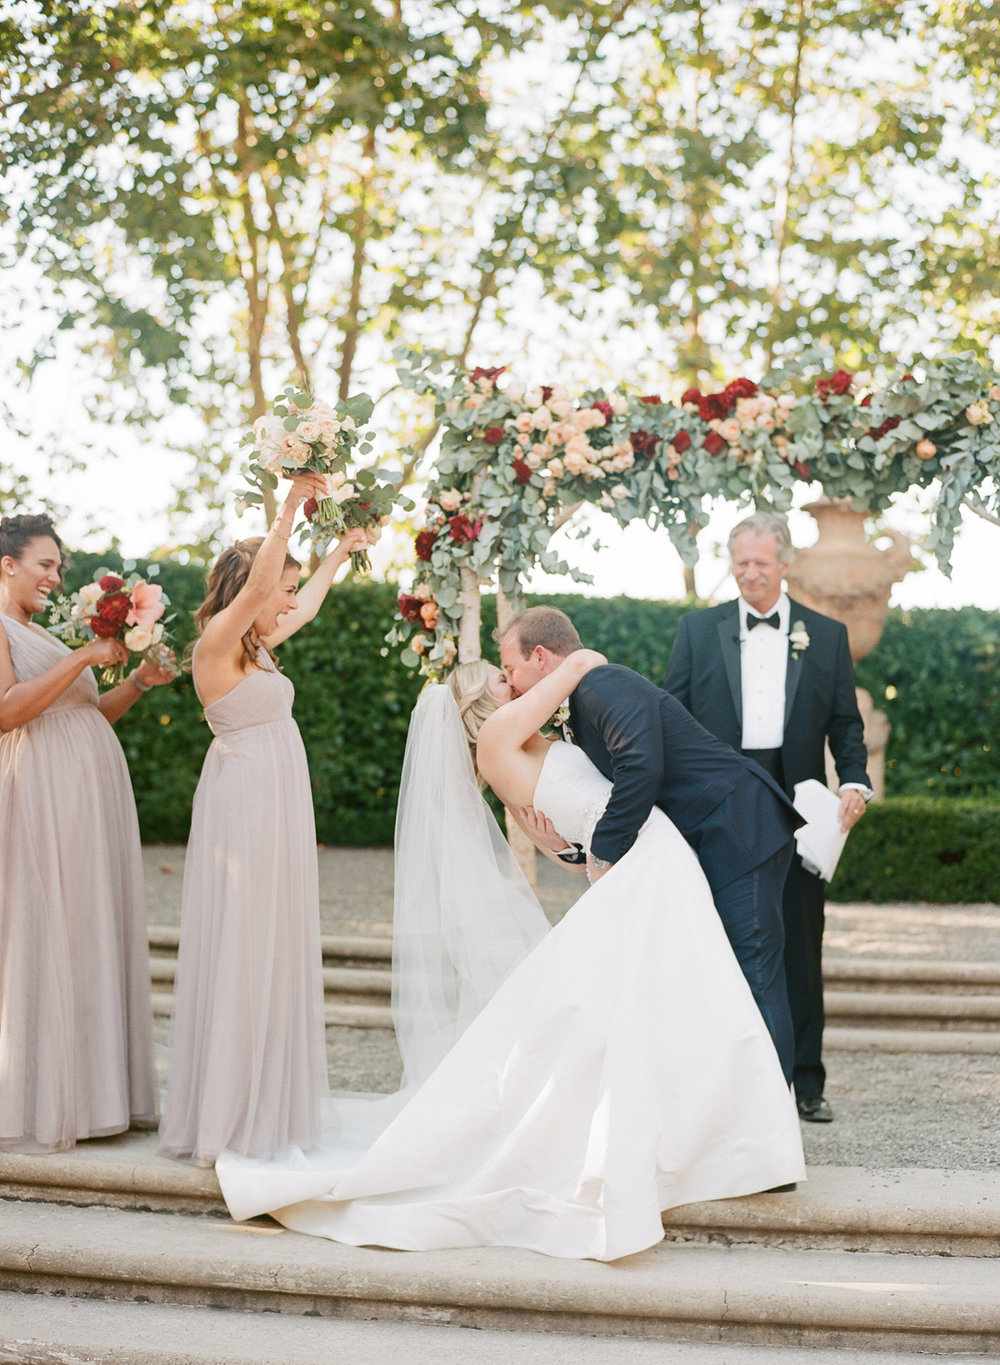 Groom dips the bride for their first kiss during the wedding ceremony; Sylvie Gil Photography